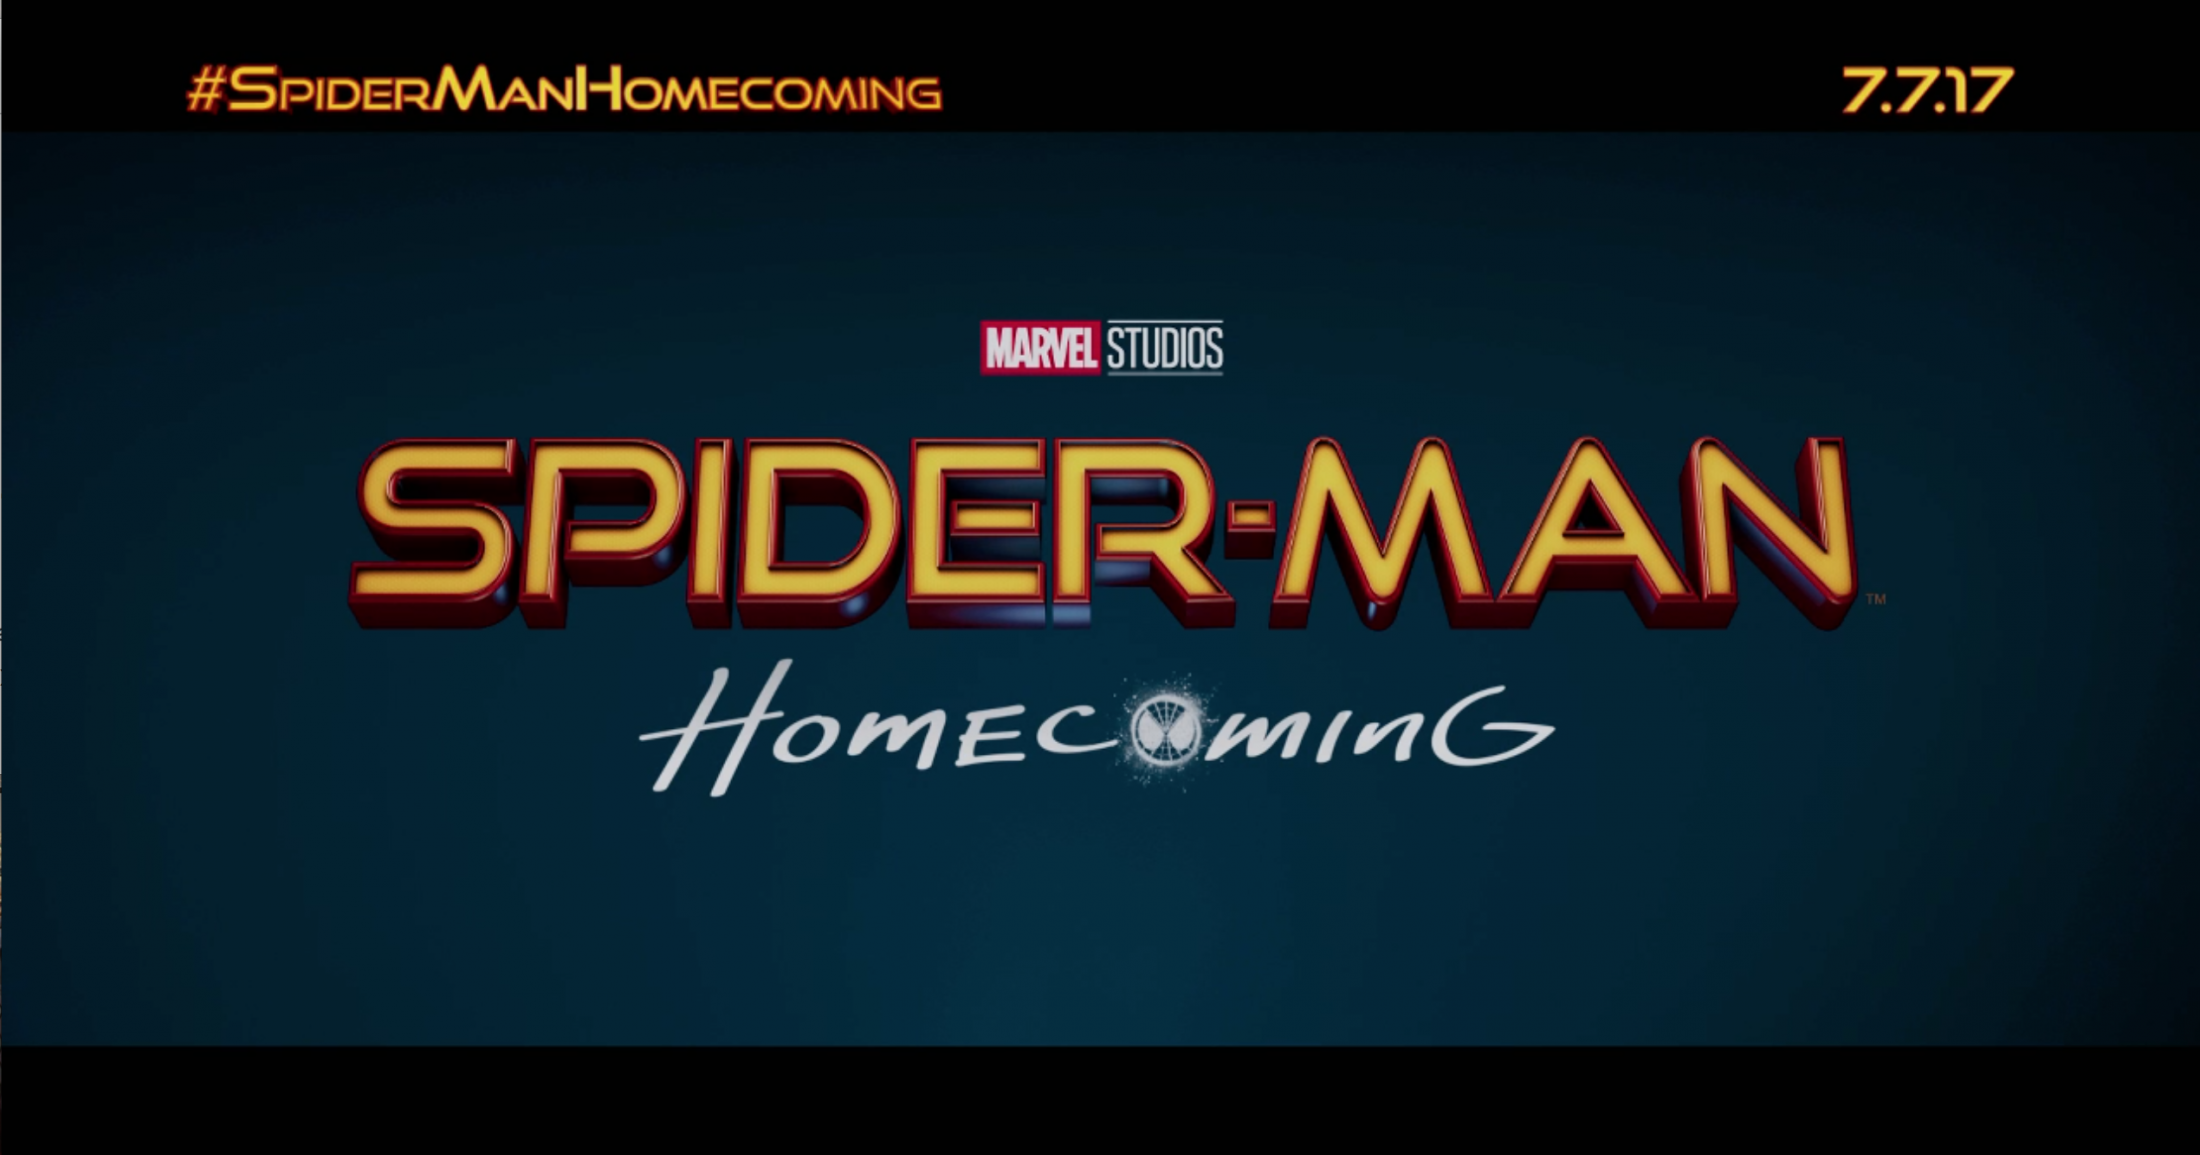 Thumbnail for Spider-Man: Homecoming - Tony Stark's NBA Finals Party